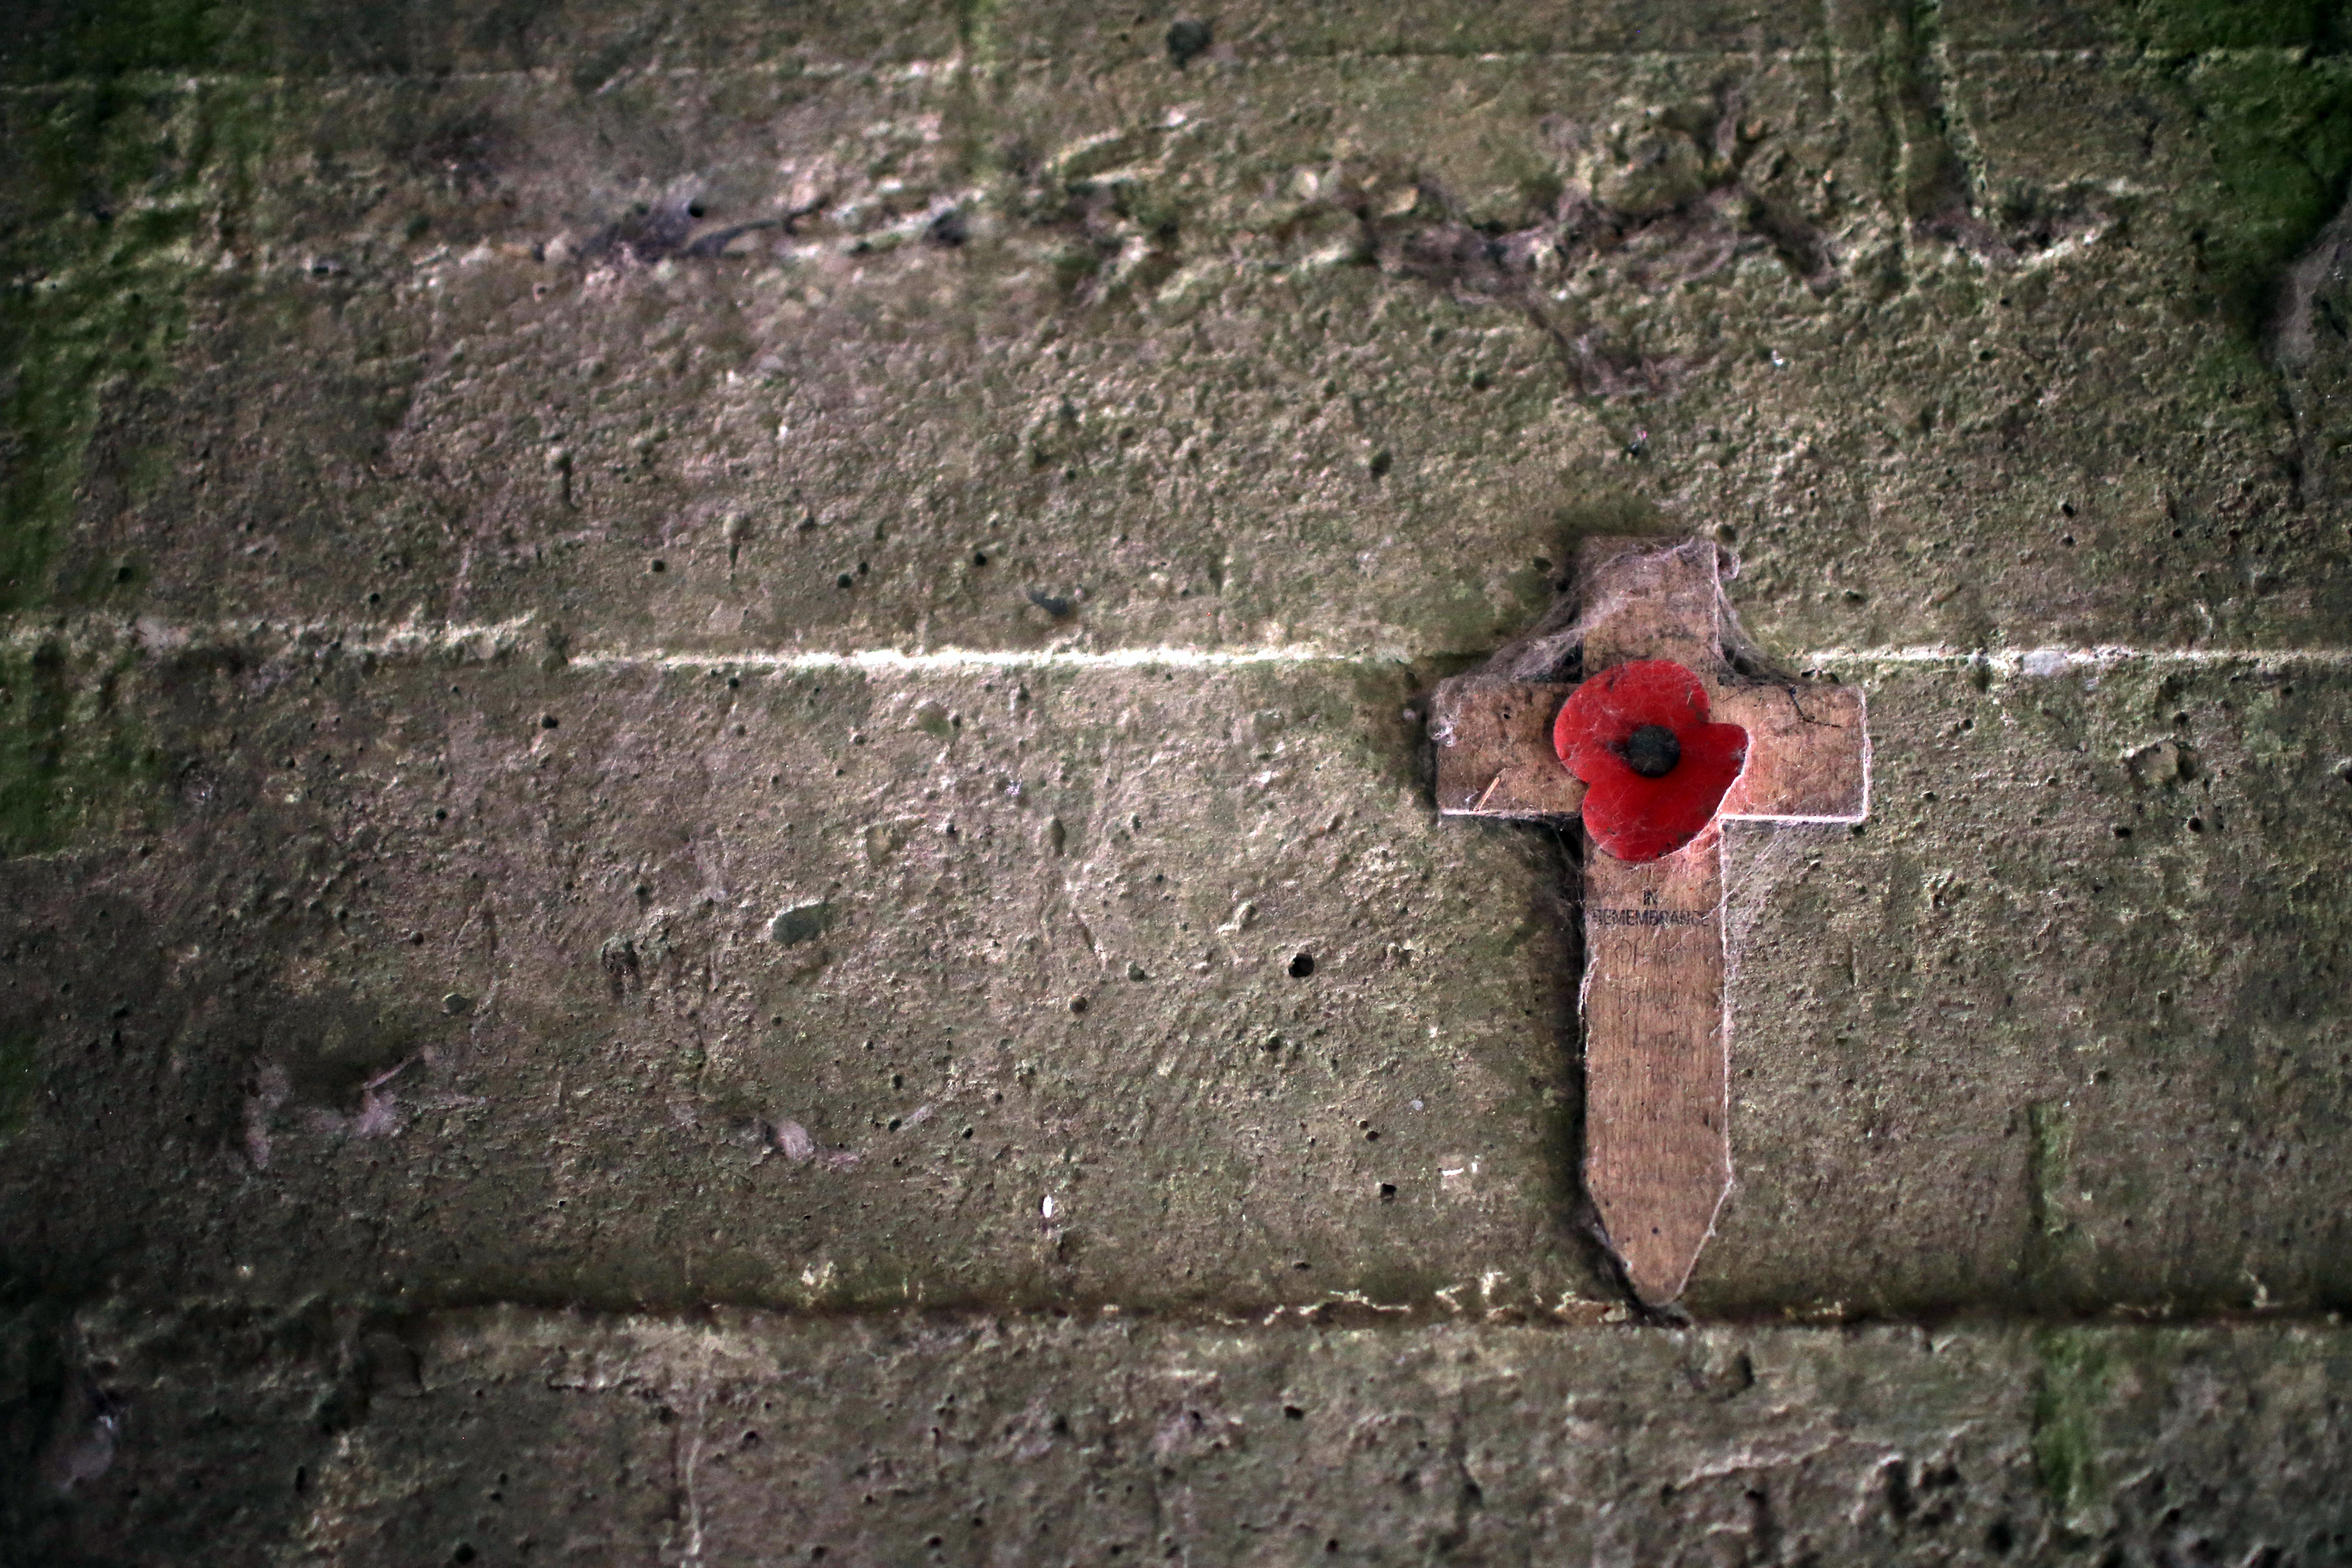 Wartime poem 'In Flanders Fields' still holds meaning today - CityNews